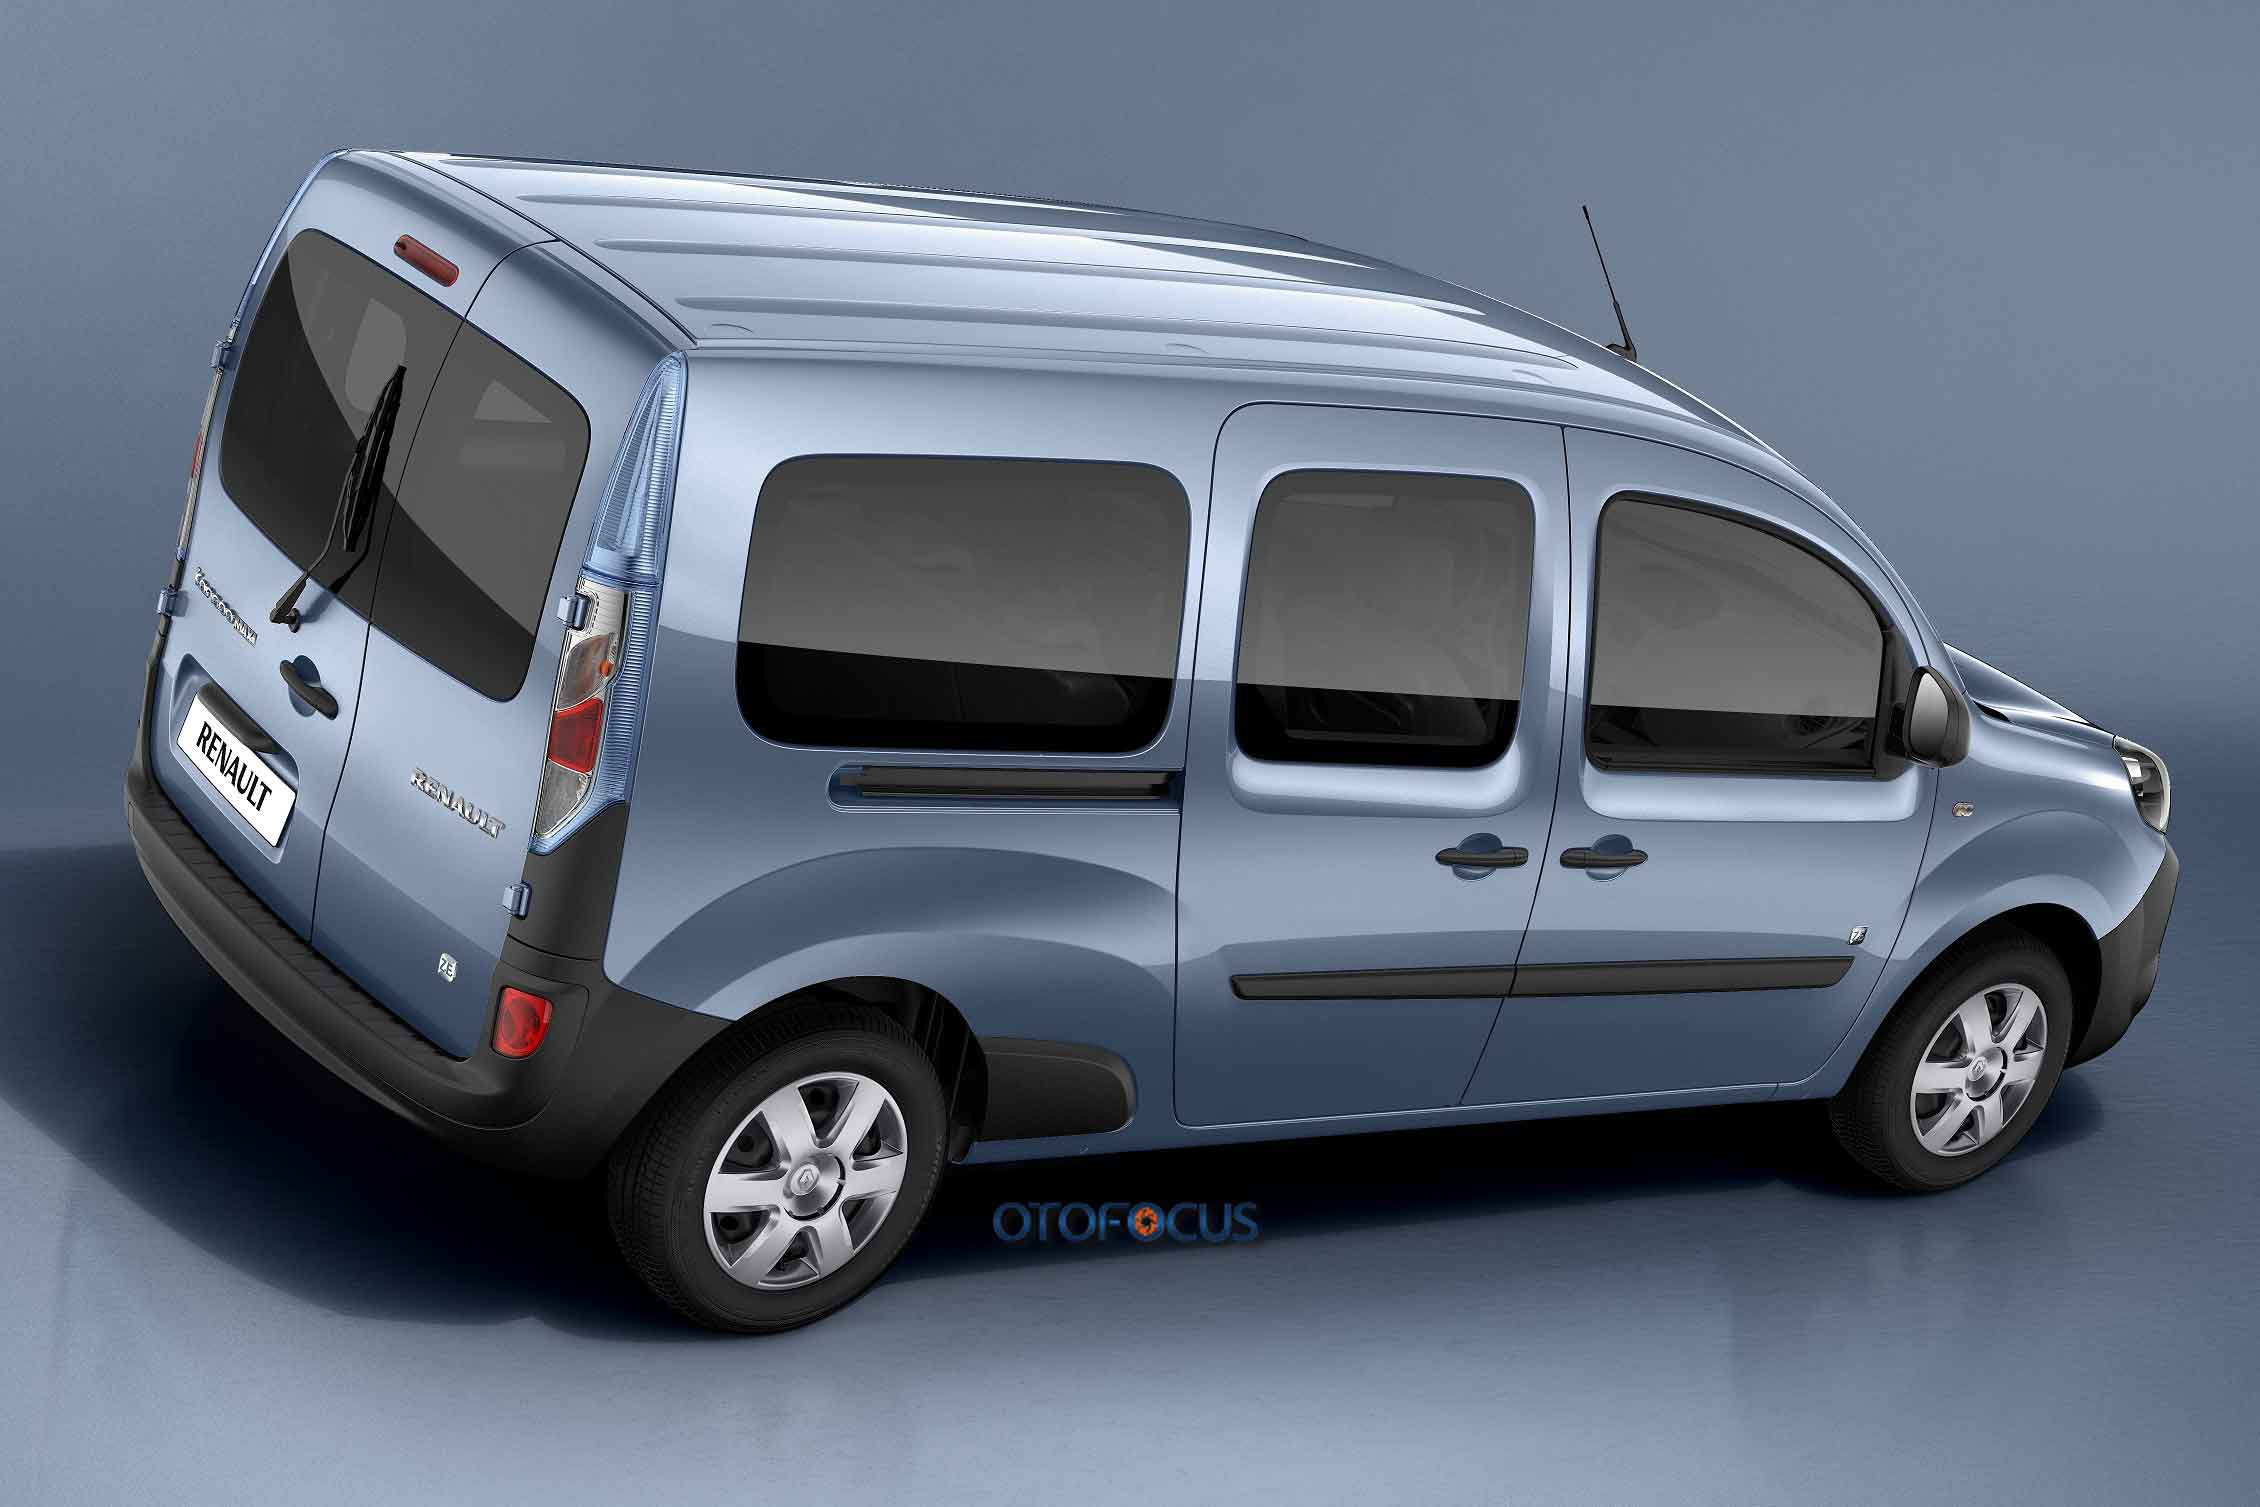 nouveau renault kangoo 2013 2014 nouvelle face autos weblog. Black Bedroom Furniture Sets. Home Design Ideas